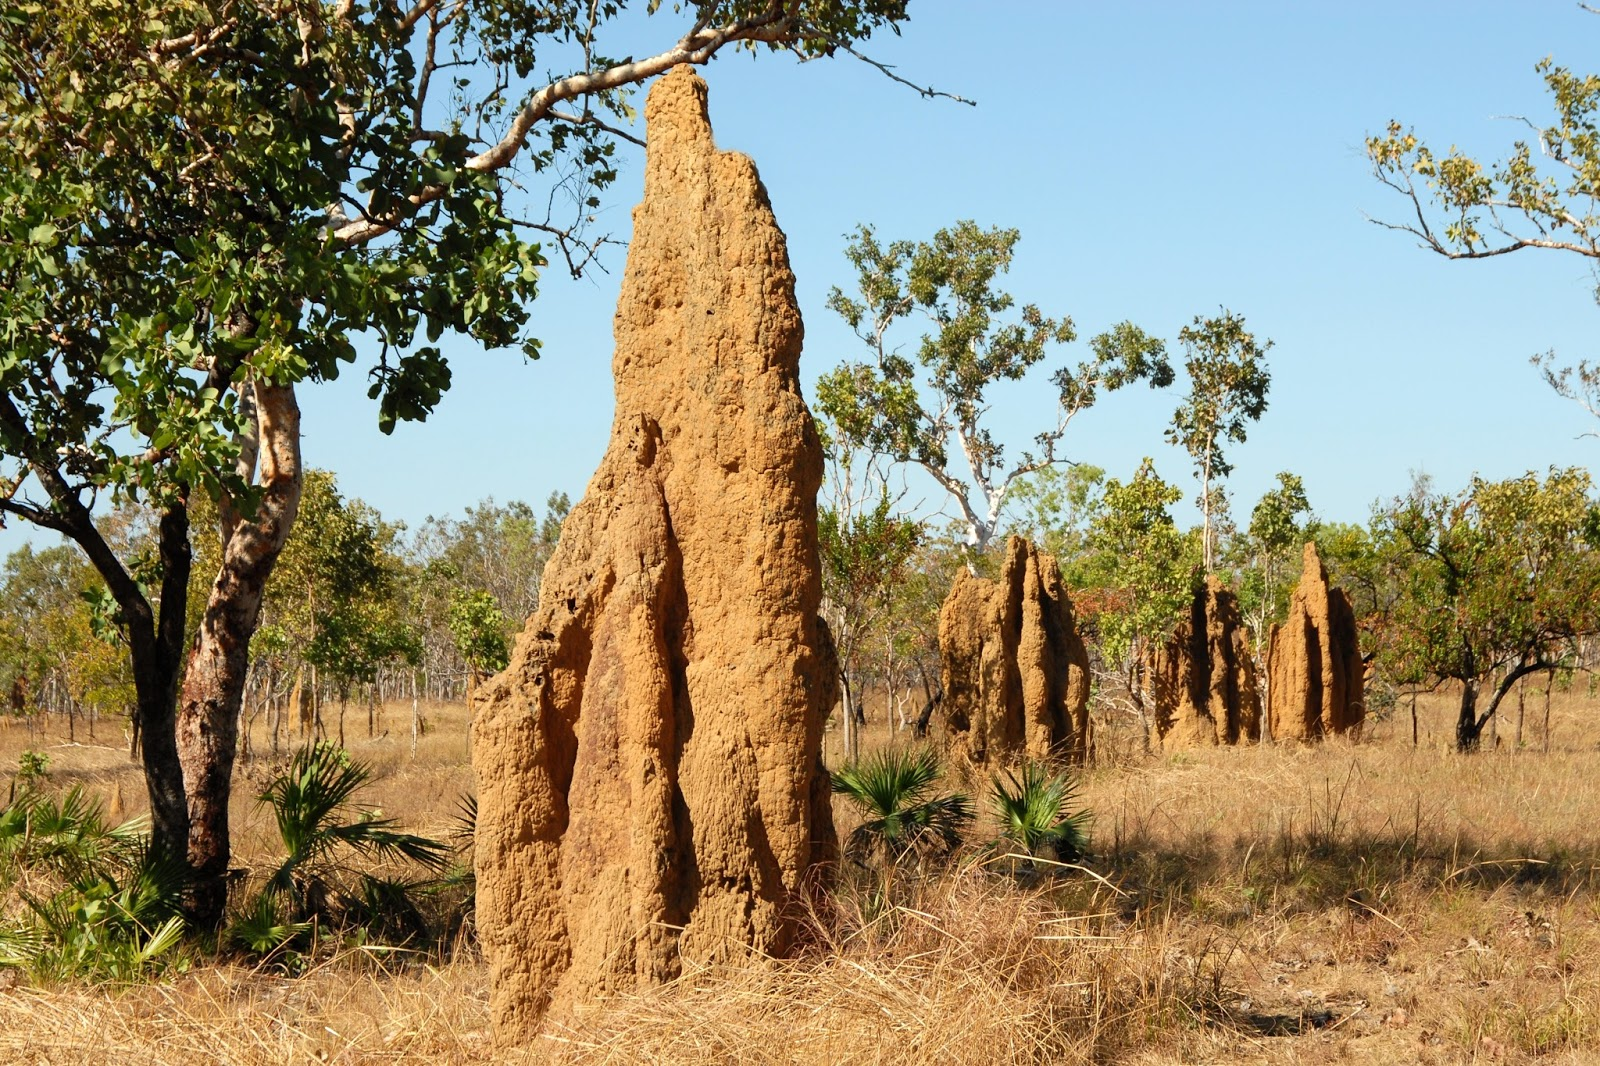 Picture of a termite mound or hill.